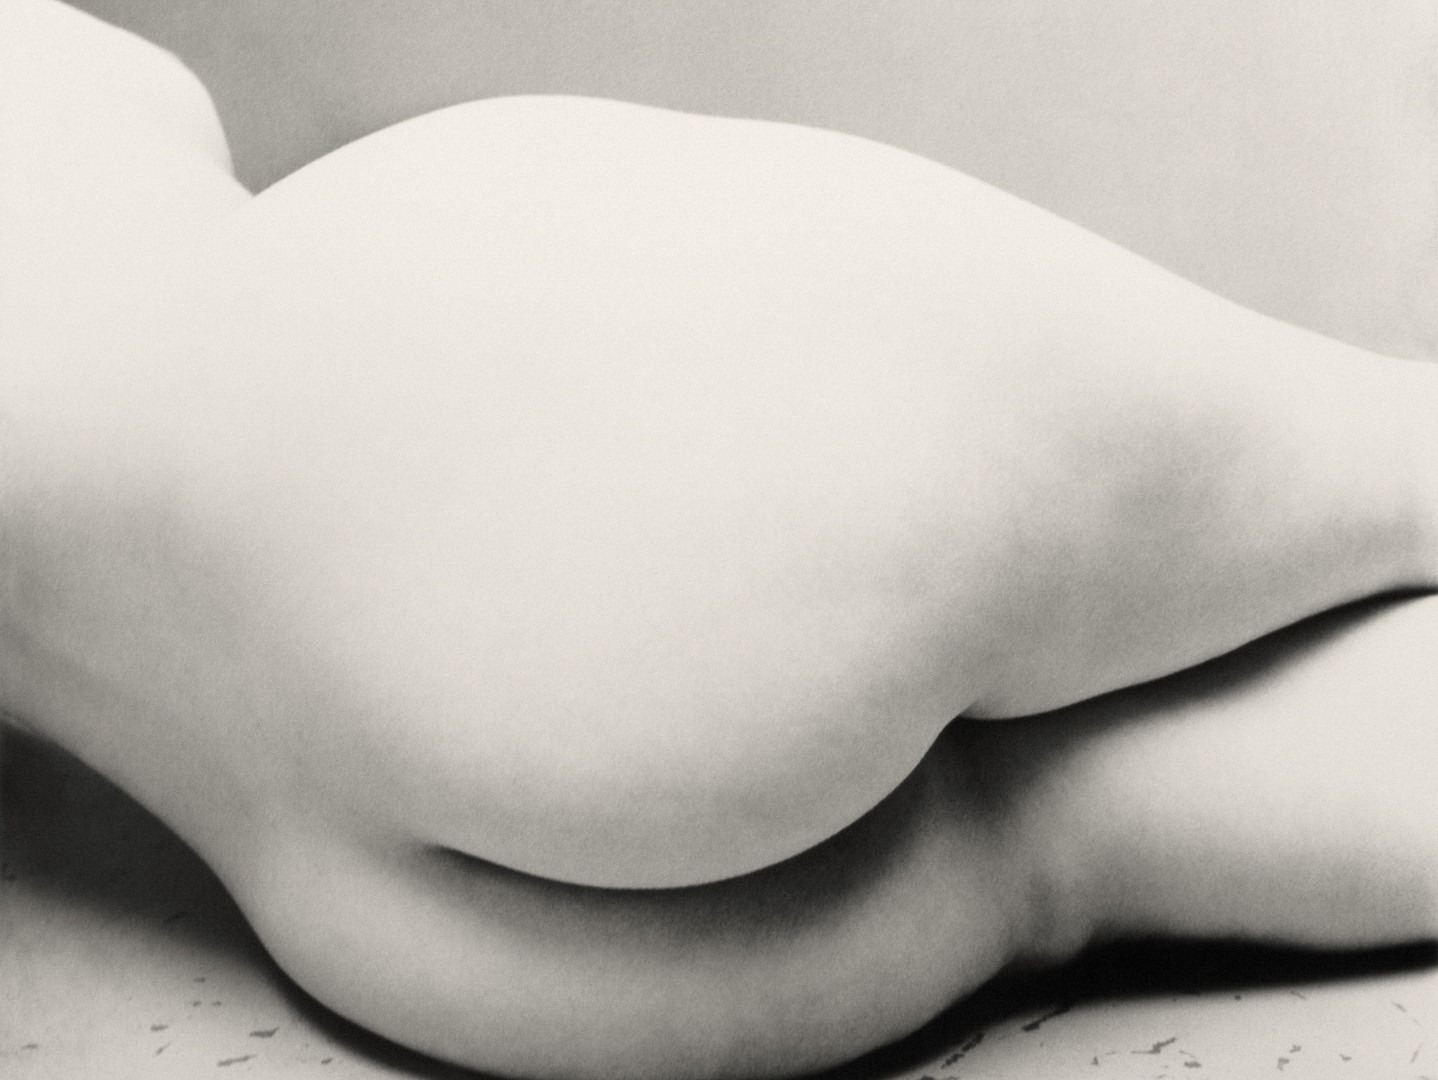 Irving Penn, Nude No. 143, New York, c. 1949-1950